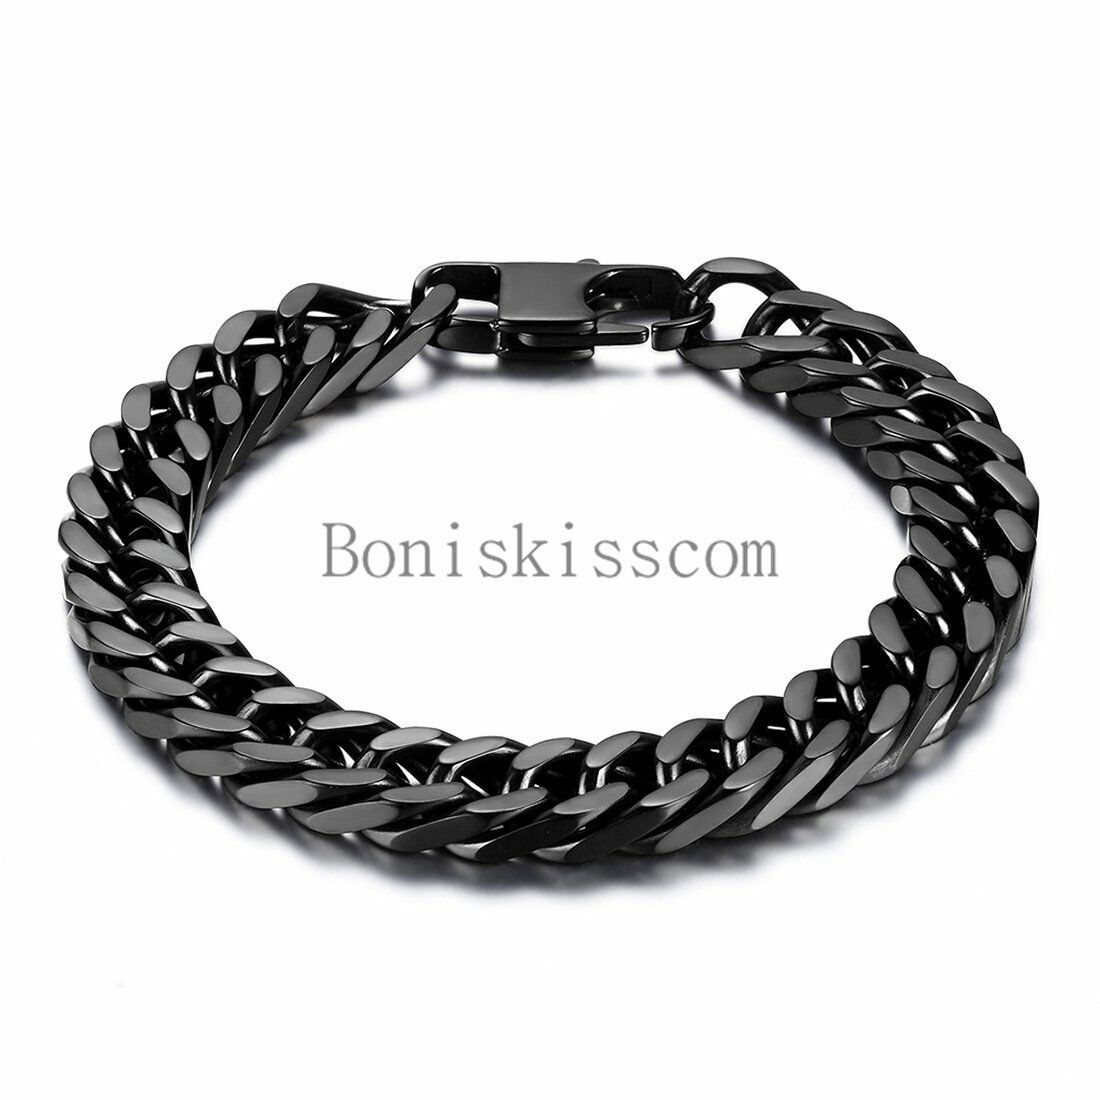 Durable Black Stainless Steel 10mm Heavy Wide Mens Curb Link Chain Br In 2020 Stainless Steel Bracelet Men Black Stainless Steel Bracelet Stainless Steel Link Bracelet